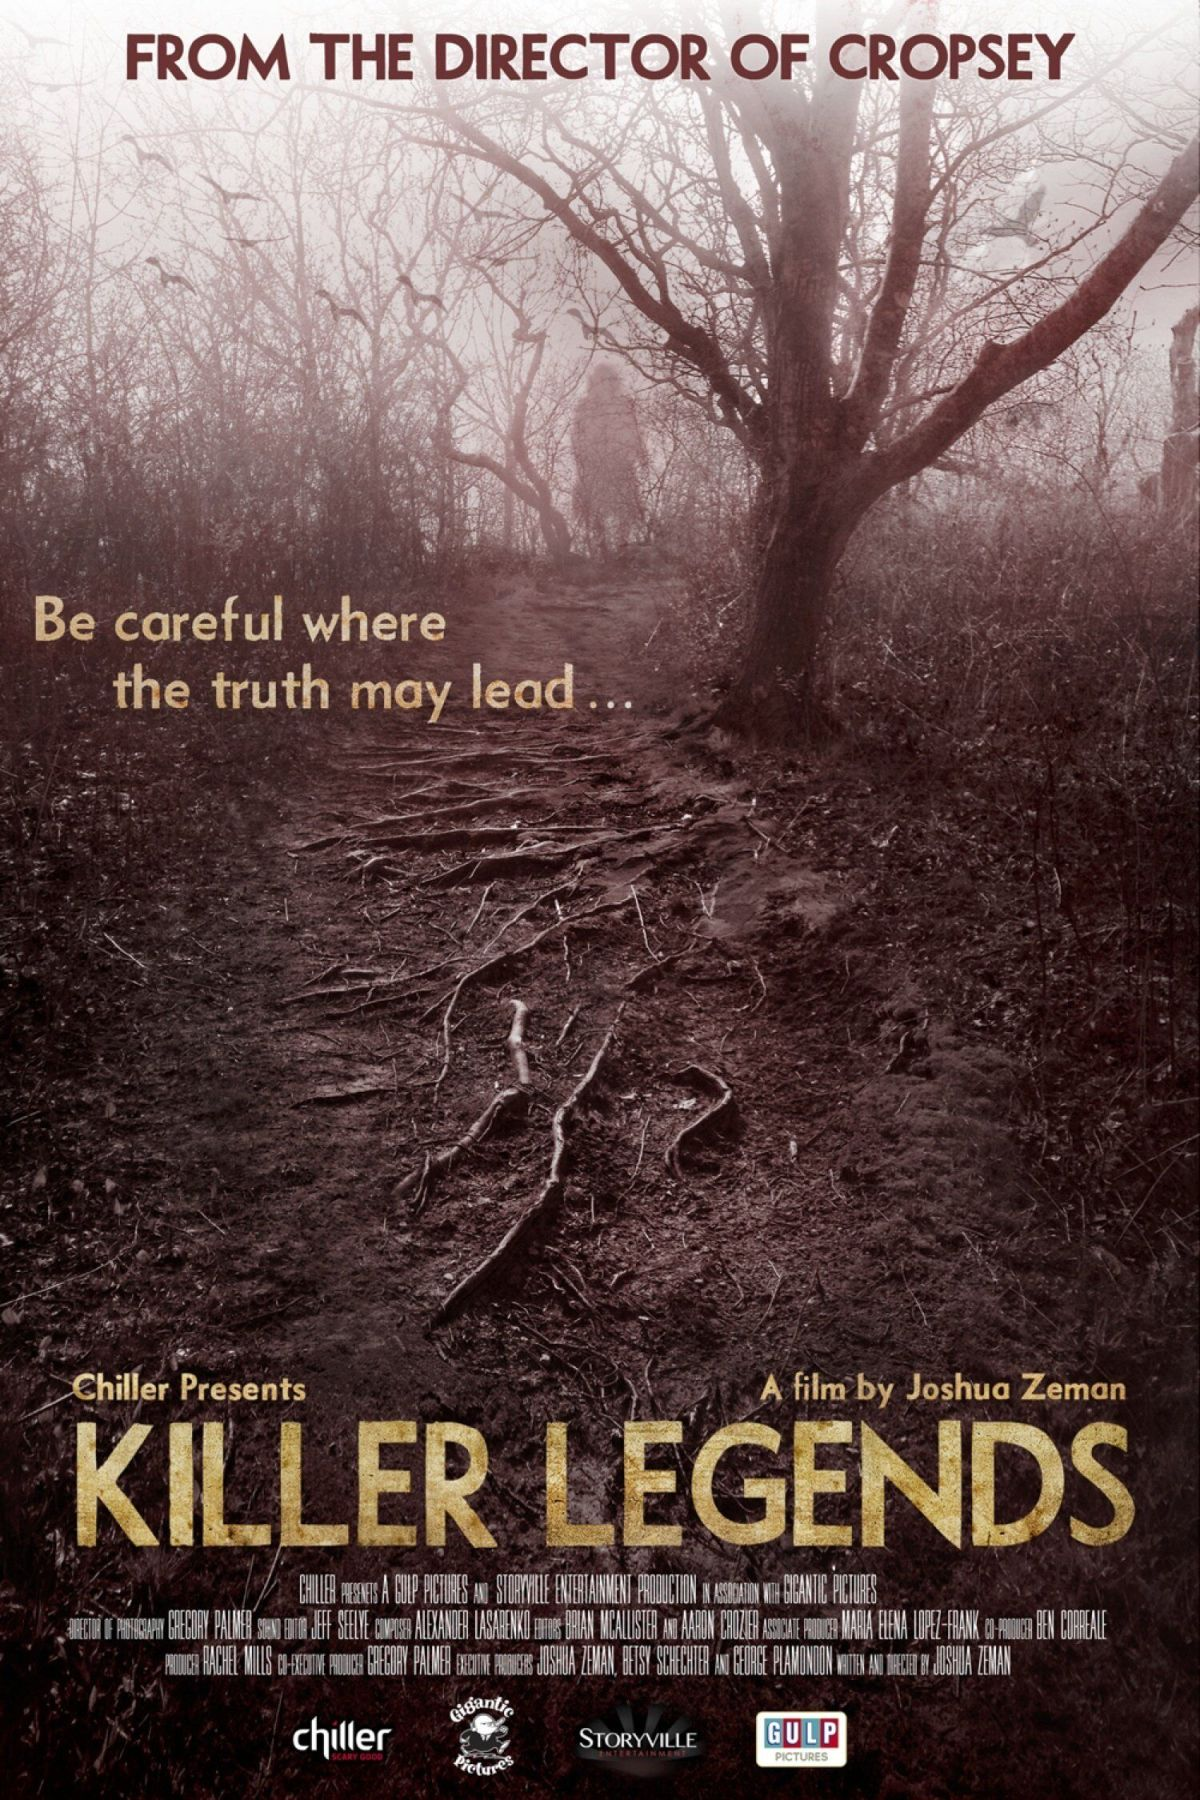 Killer-Legends-scary-documentary-poster